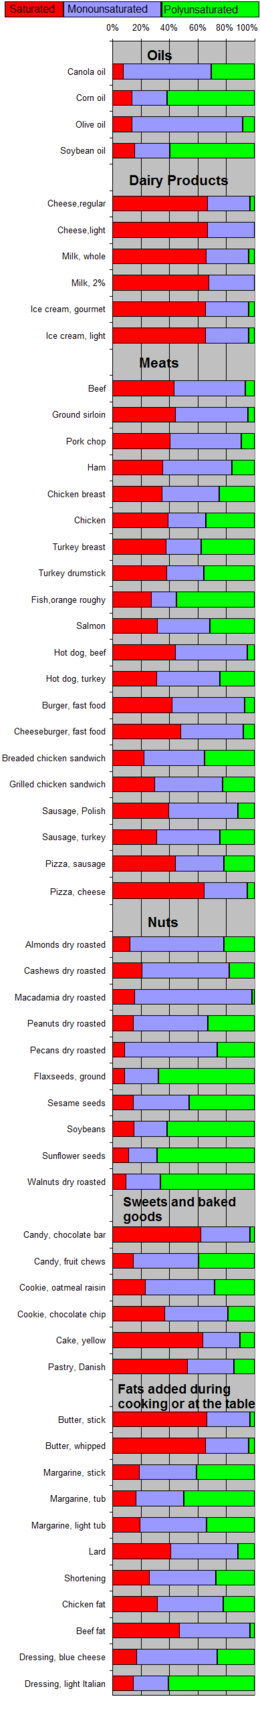 Saturated Fat List Jpg